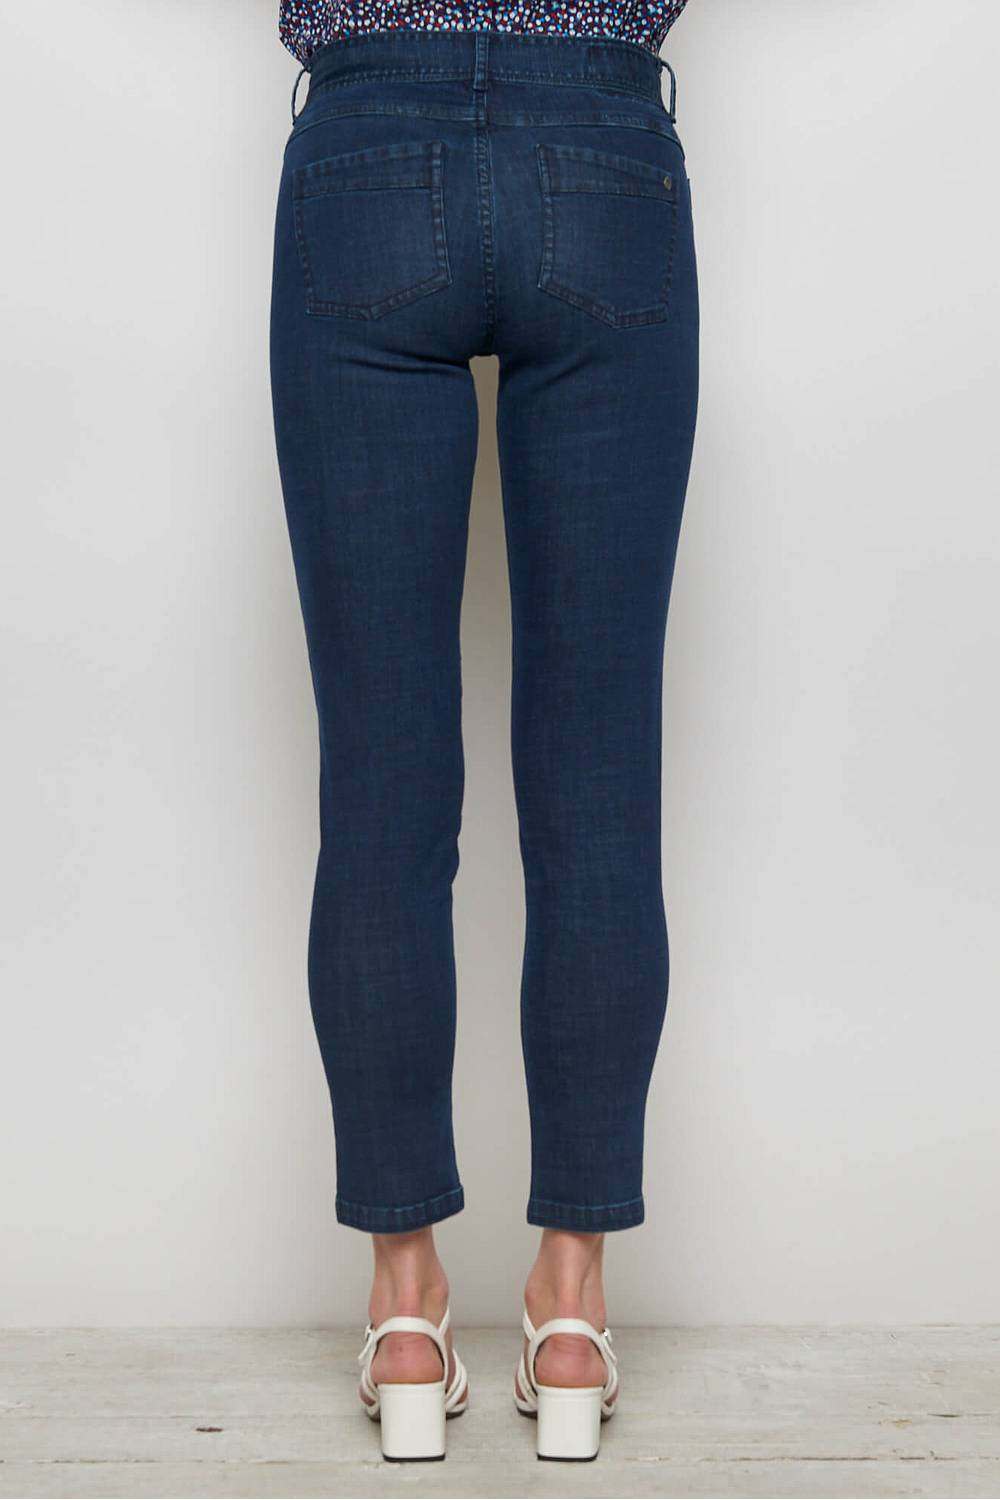 Stretch Denim Skinny Jeans MAHLIA dark indigo